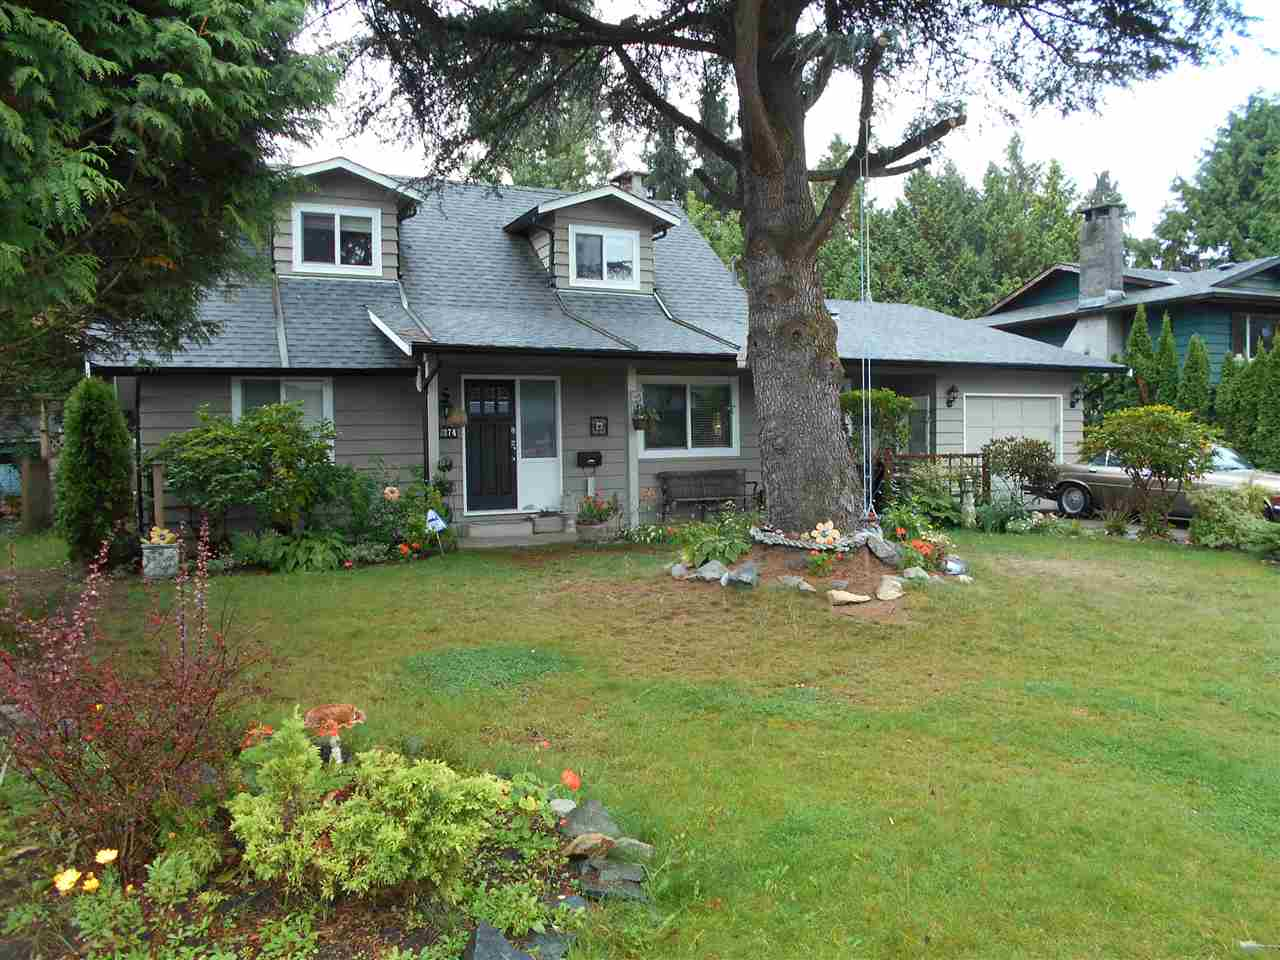 FEATURED LISTING: 18874 120 AVENUE